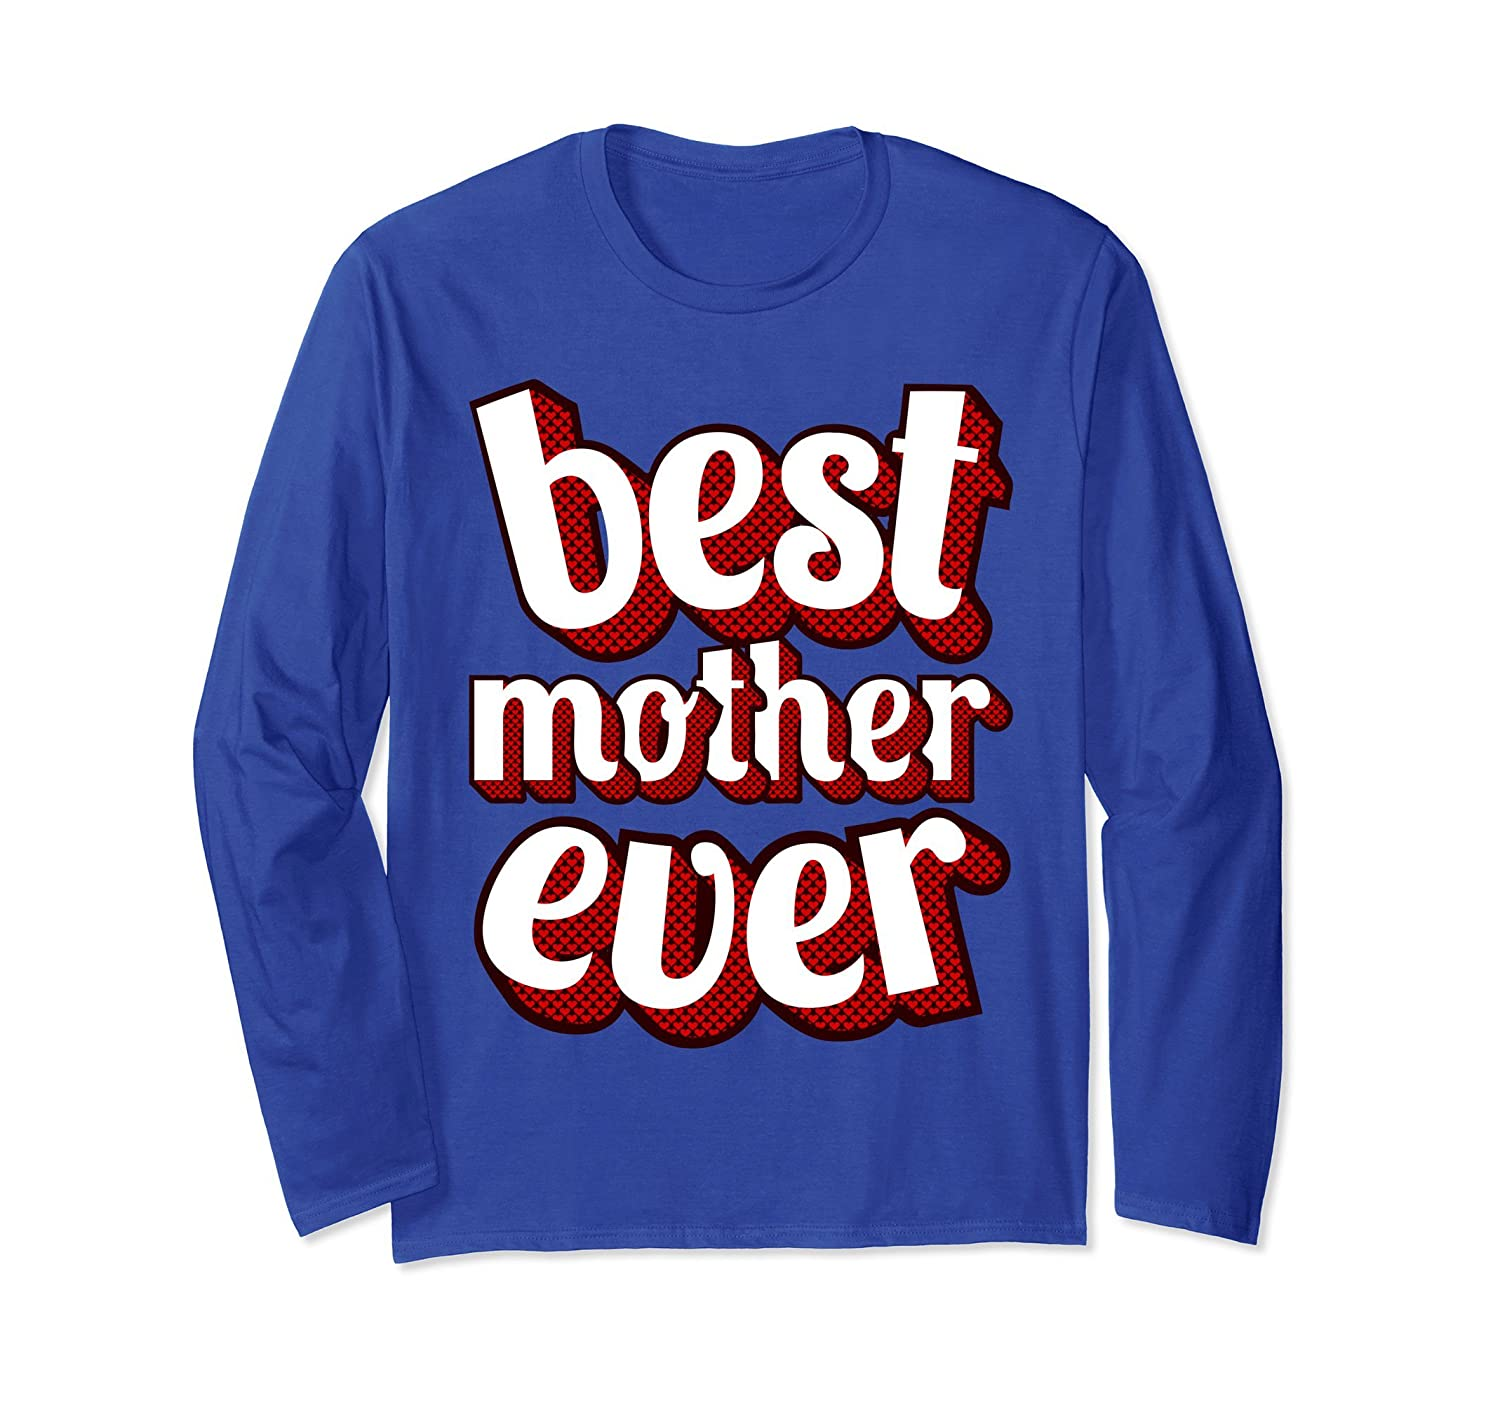 Best Mother Ever Long Sleeve Shirt Vintage Design Retro Tee-alottee gift